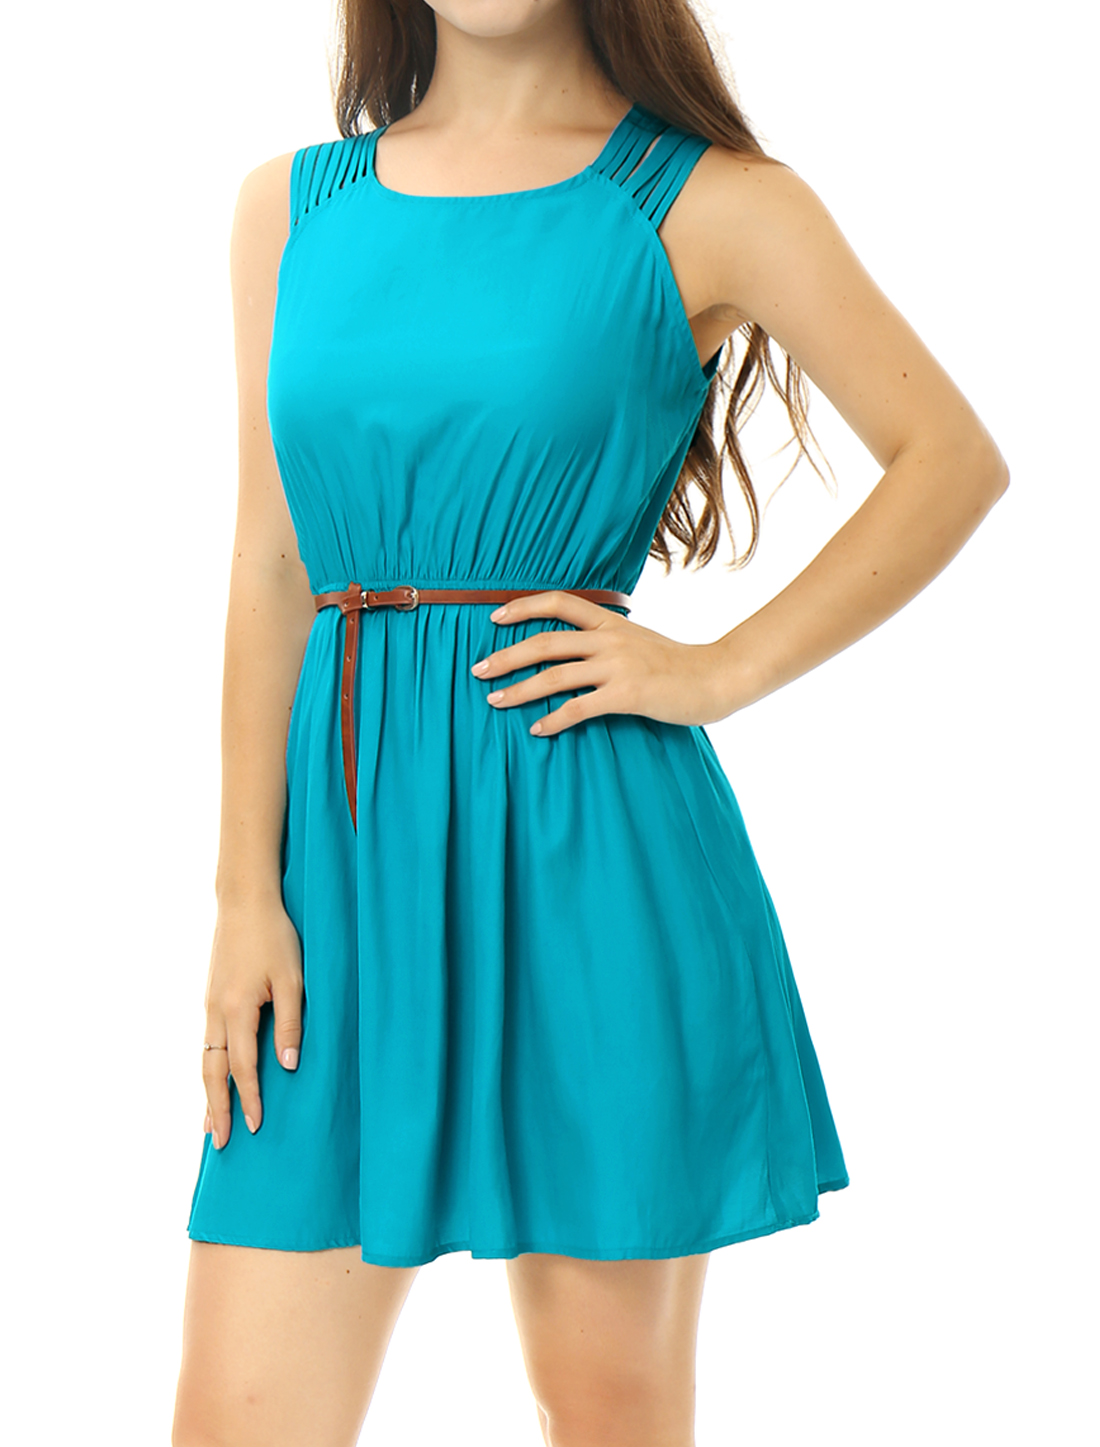 Women Strappy Shoulders Sleeveless Belted A Line Dress Blue S